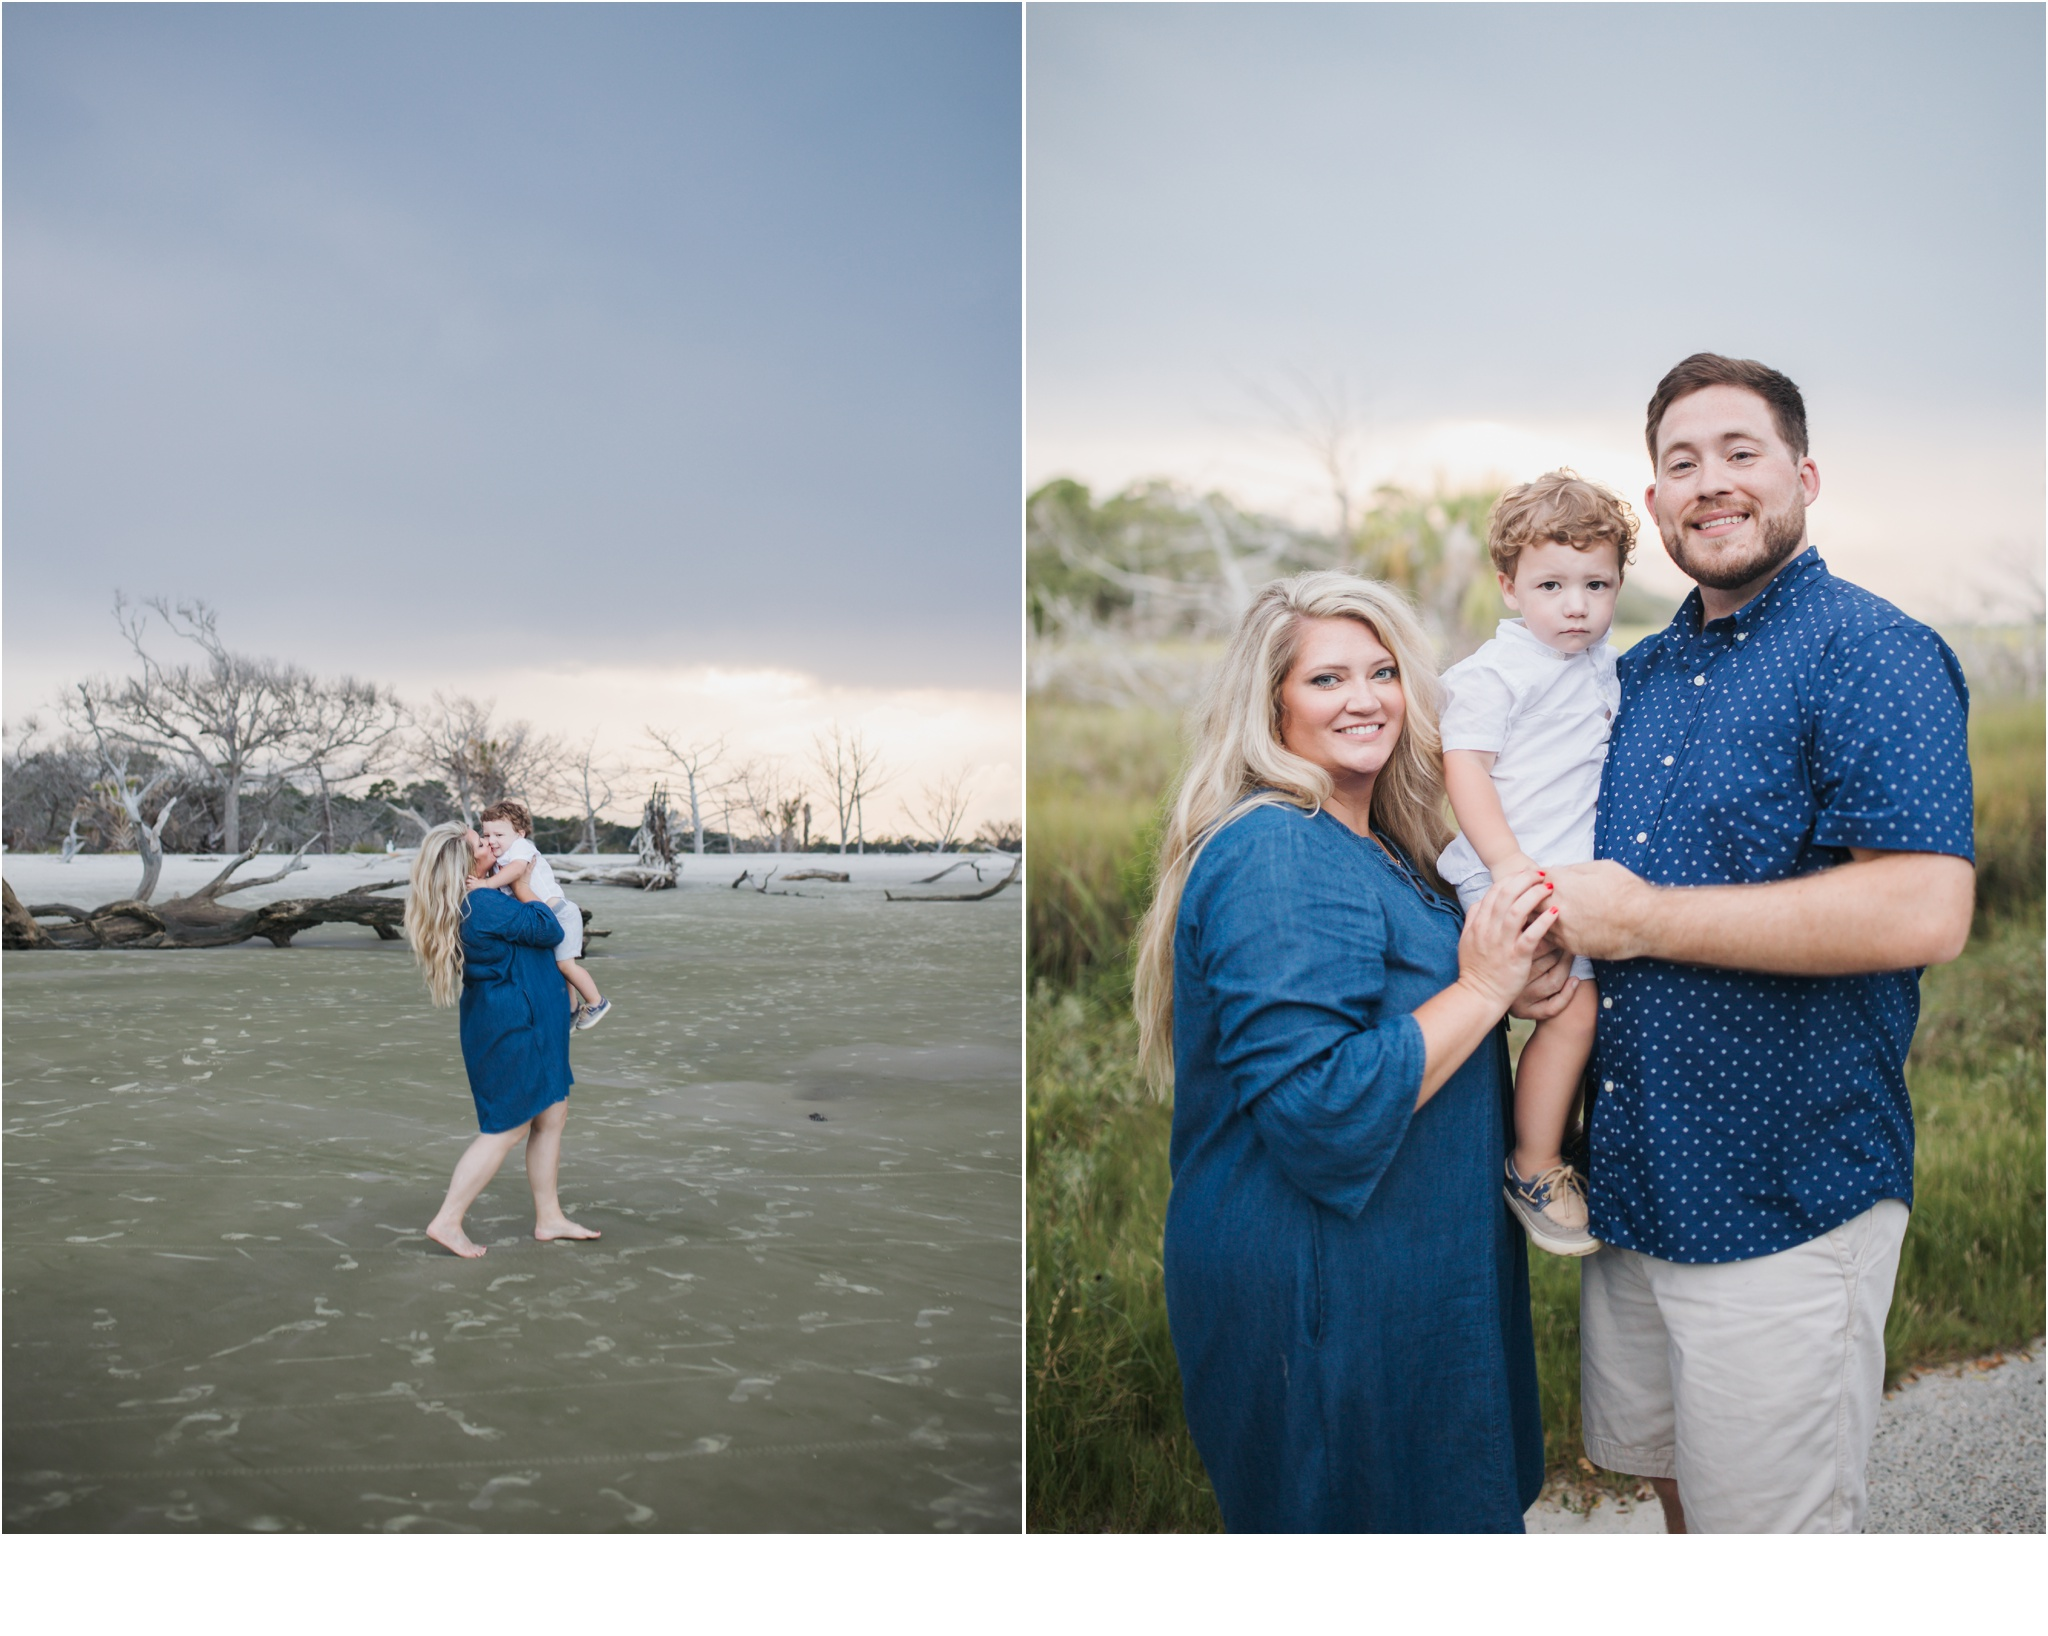 Rainey_Gregg_Photography_St._Simons_Island_Georgia_California_Wedding_Portrait_Photography_1617.jpg